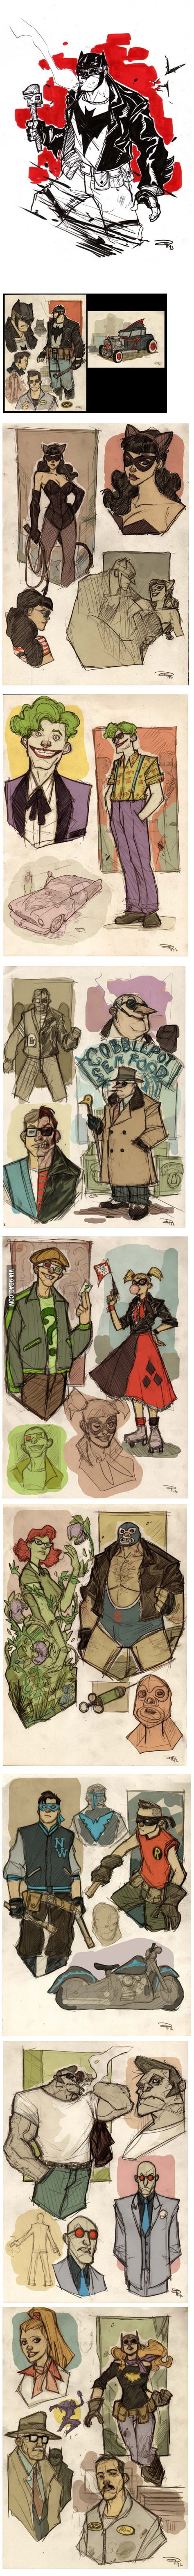 Batman and Co 50s Rockabilly Re-Design